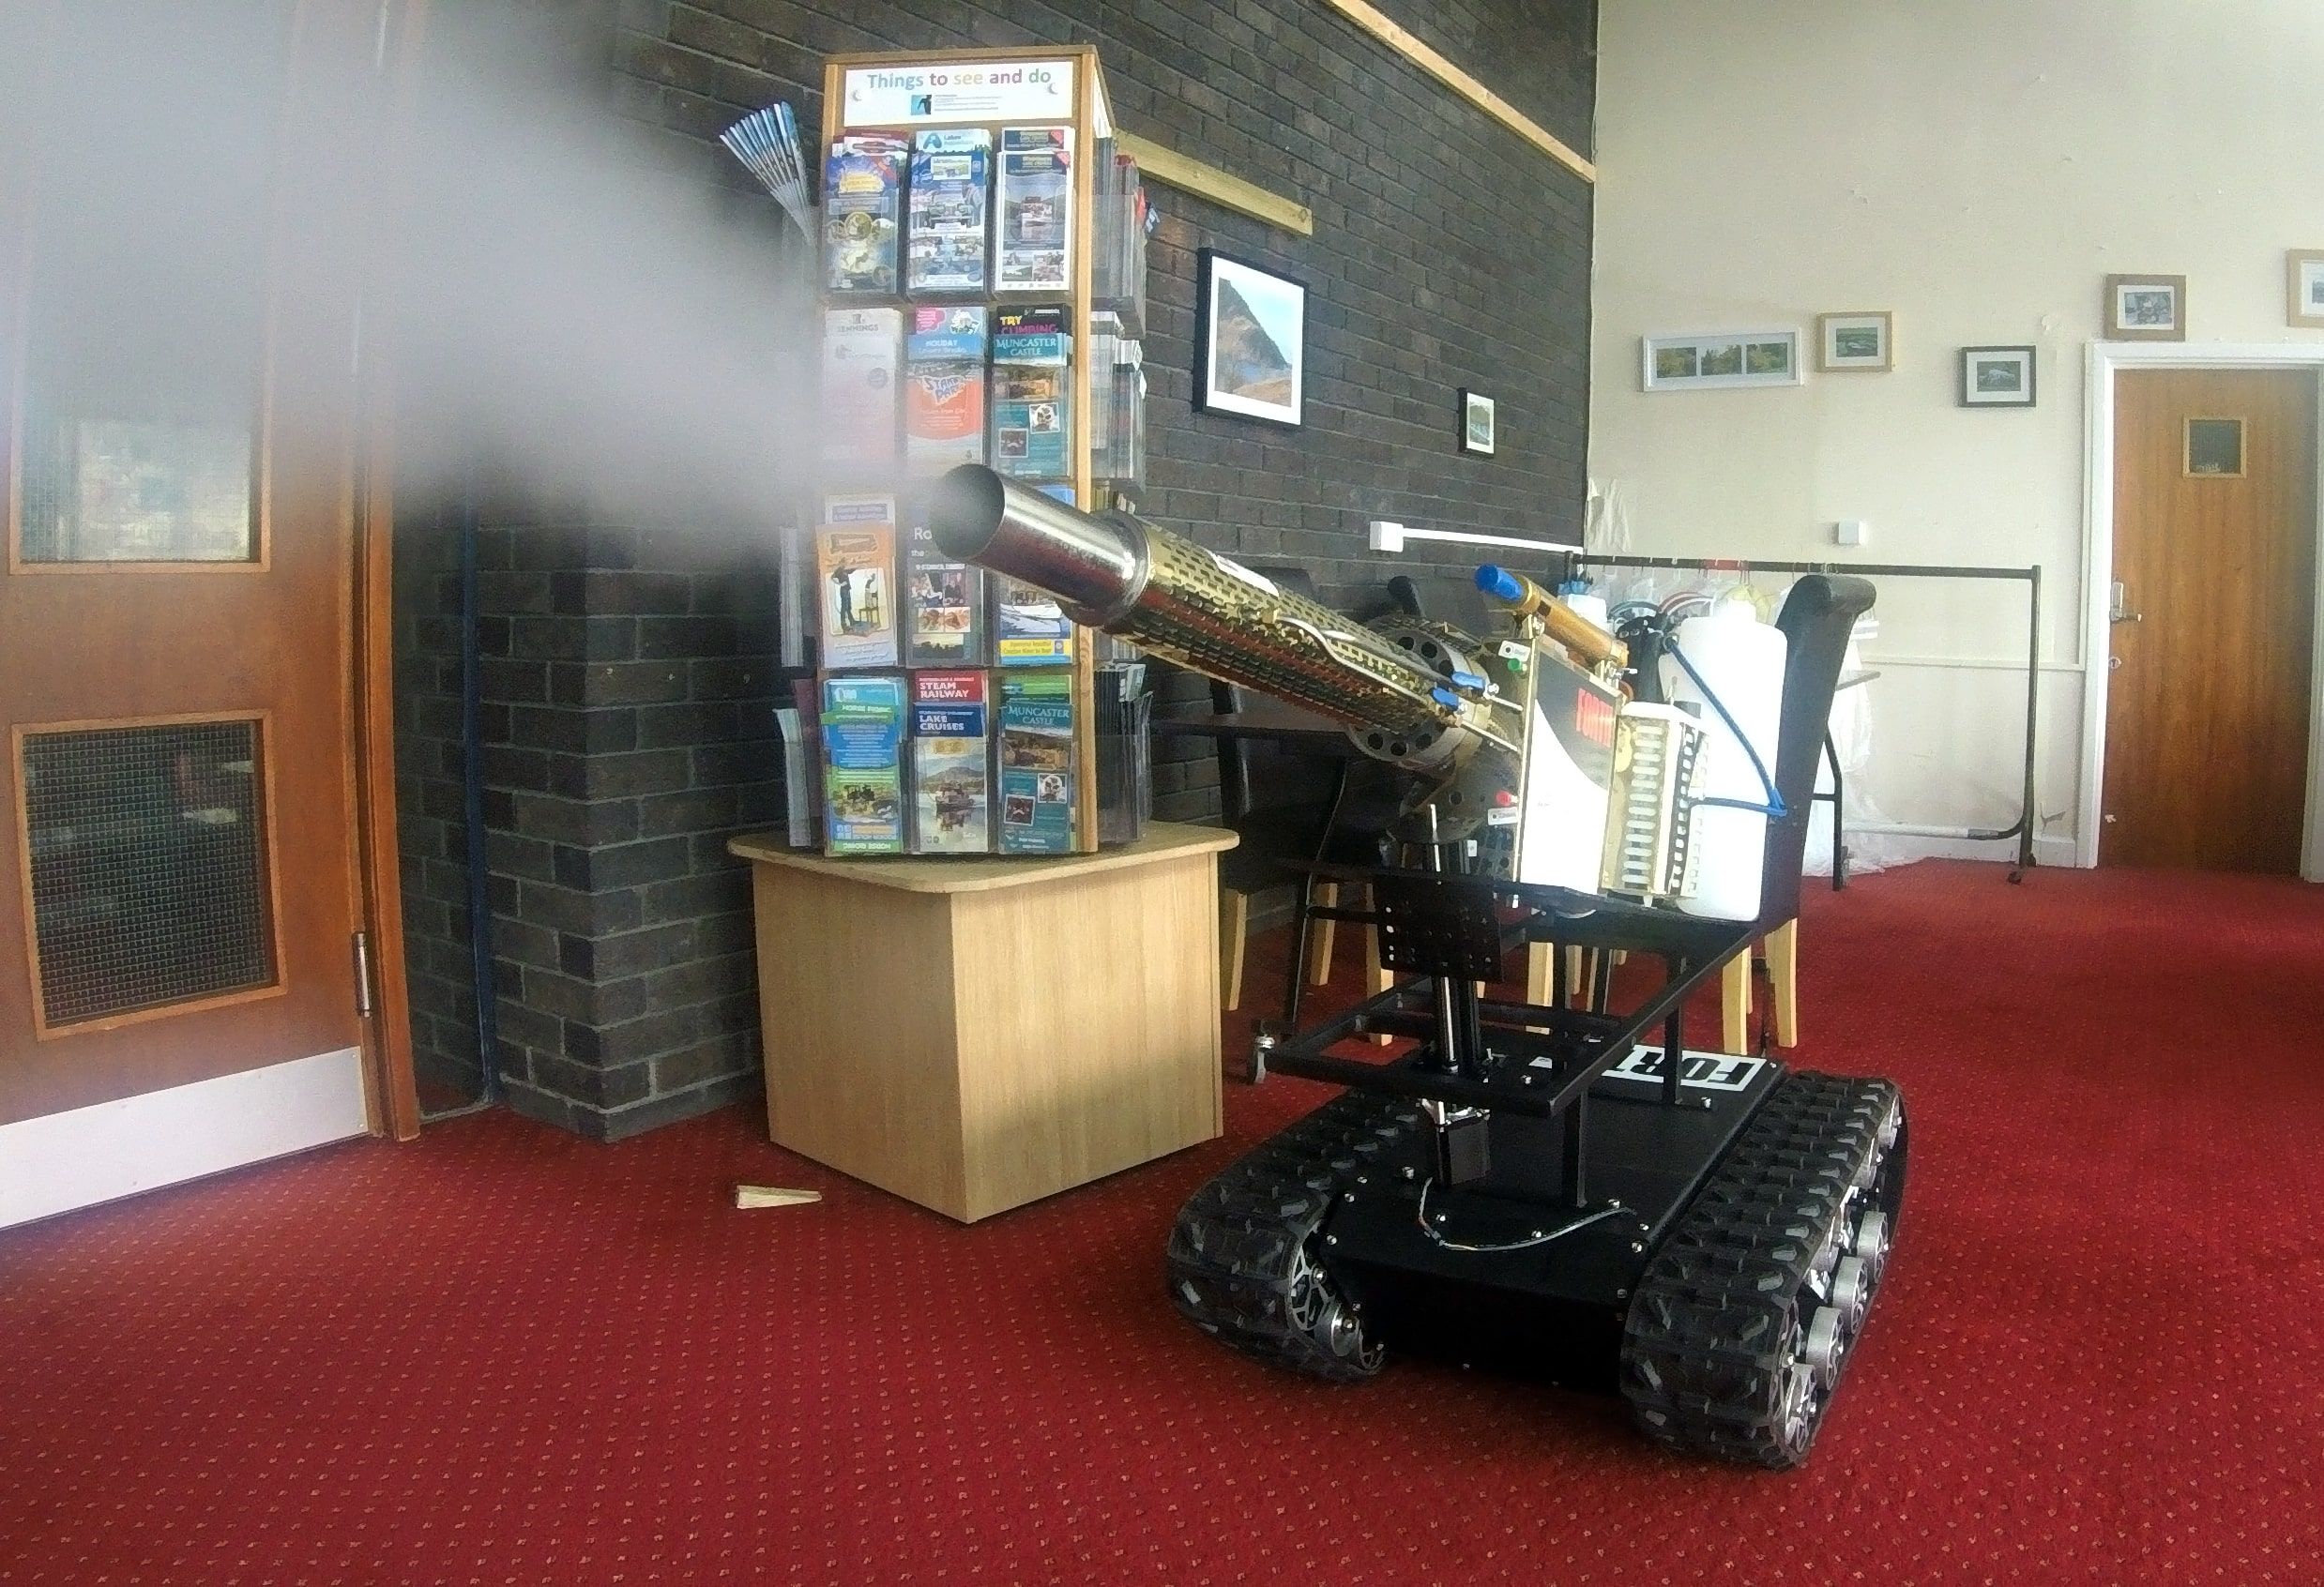 Forth's disinfecting robot being demonstrated in a reception area at Whitehaven Civic Hall-min (1).jpg